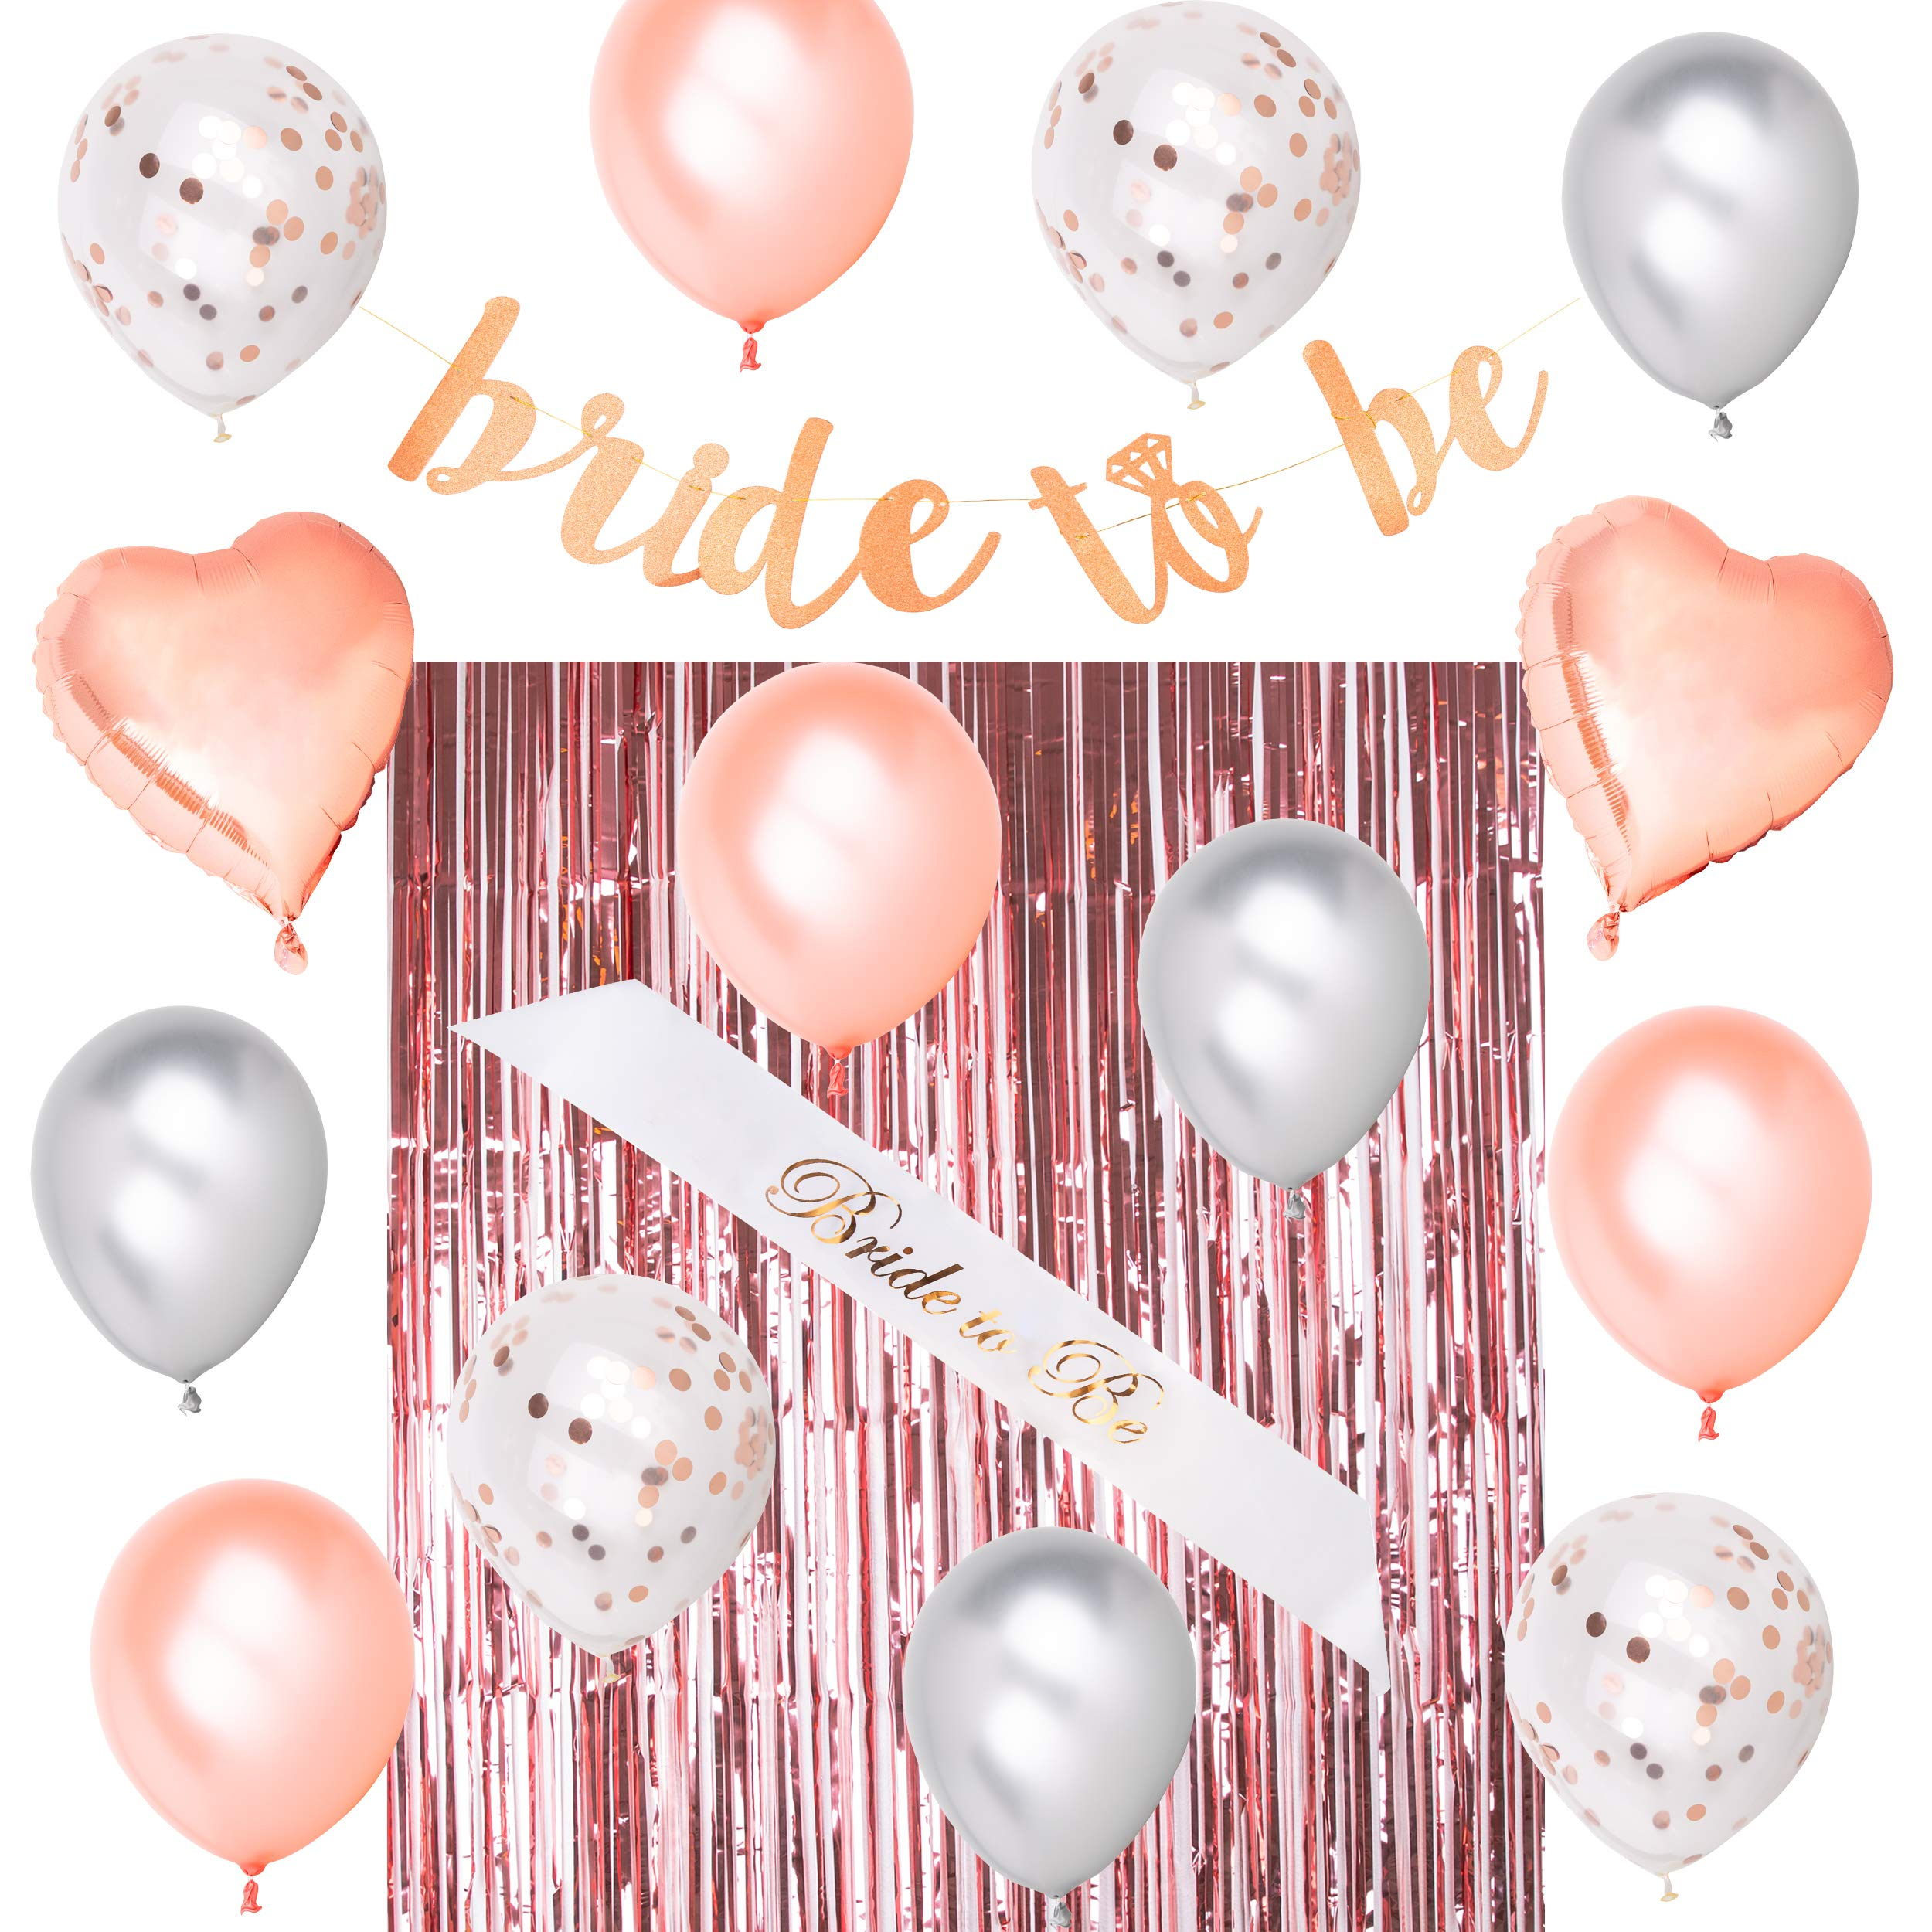 Royal Memories Bridal Shower Decorations - Bachelorette Party Decorations - Bride to Be Sash, Metallic Rose Gold Foil Fringe Curtain, Rose Gold Glitter Bride to Be Banner, 14 Beautiful Balloons by Royal Memories